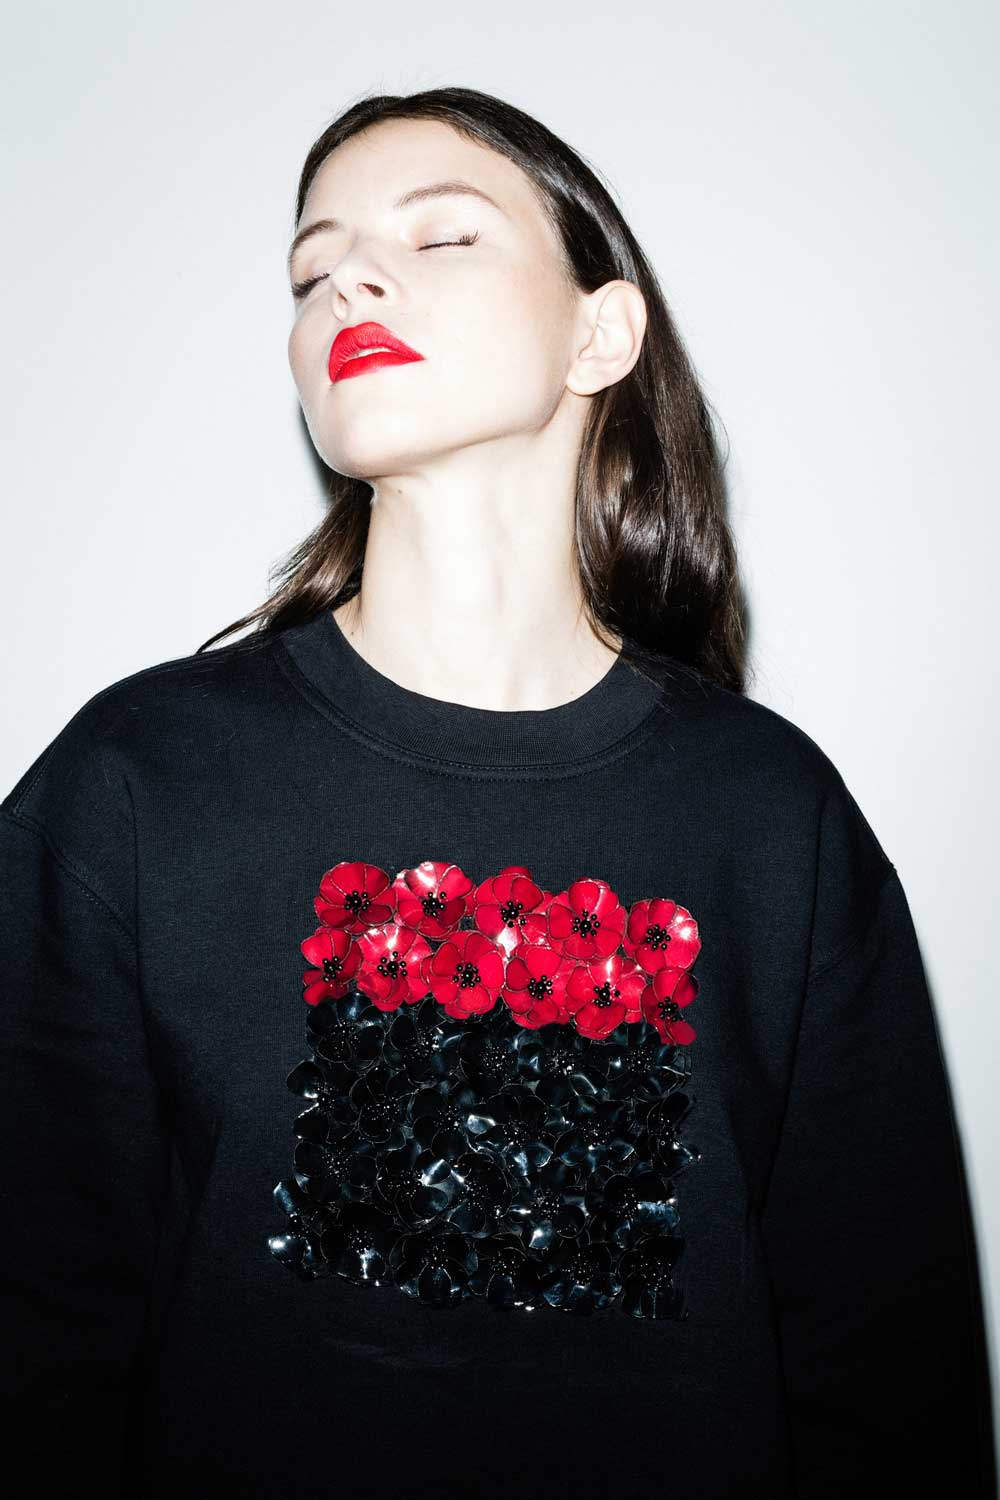 fflag-sweatshirt-poppies-ornement-fleurs-sequins-bicolore3